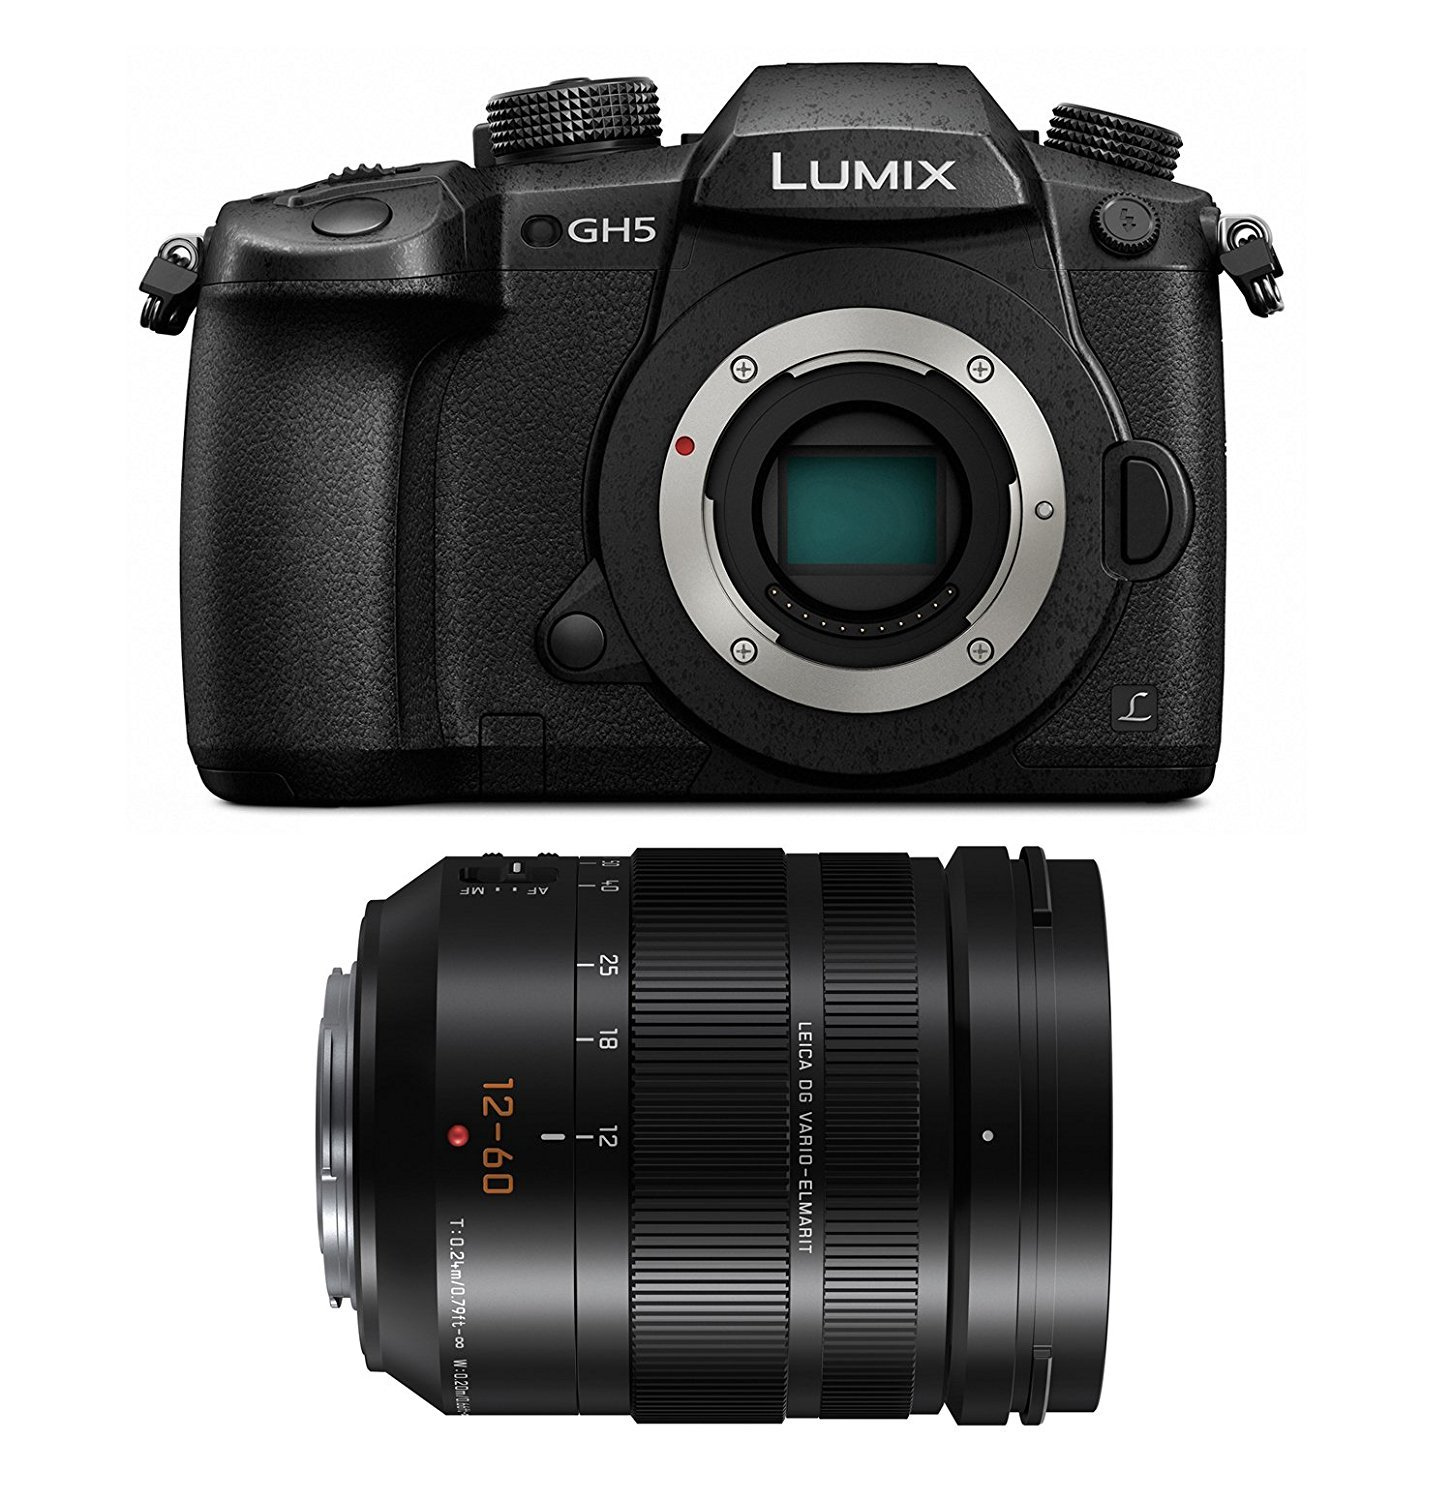 PANASONIC LUMIX GH5 Body 4K Mirrorless Camera with LUMIX G LEICA DG 12-60mm F2.8-4.0 Lens